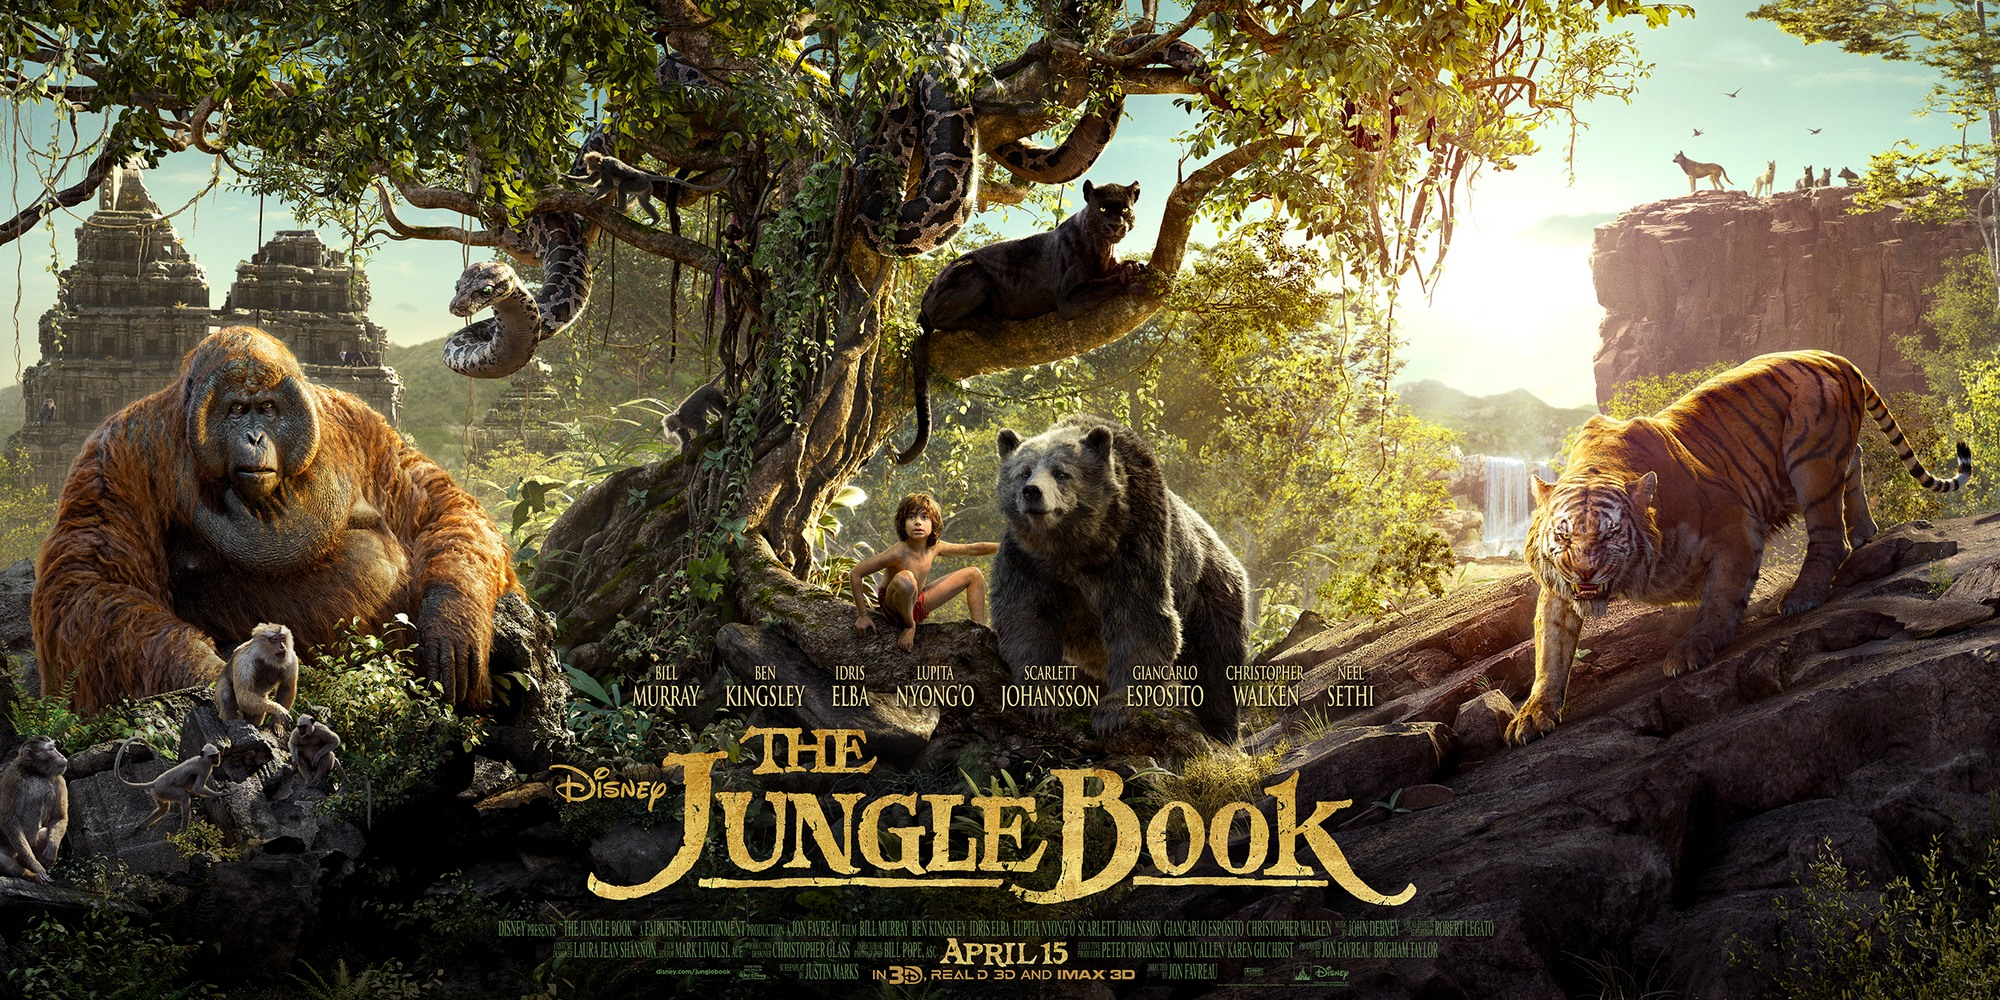 /images/upload/blog/1605/1605_the_jungle_book_triptych_poster.jpg